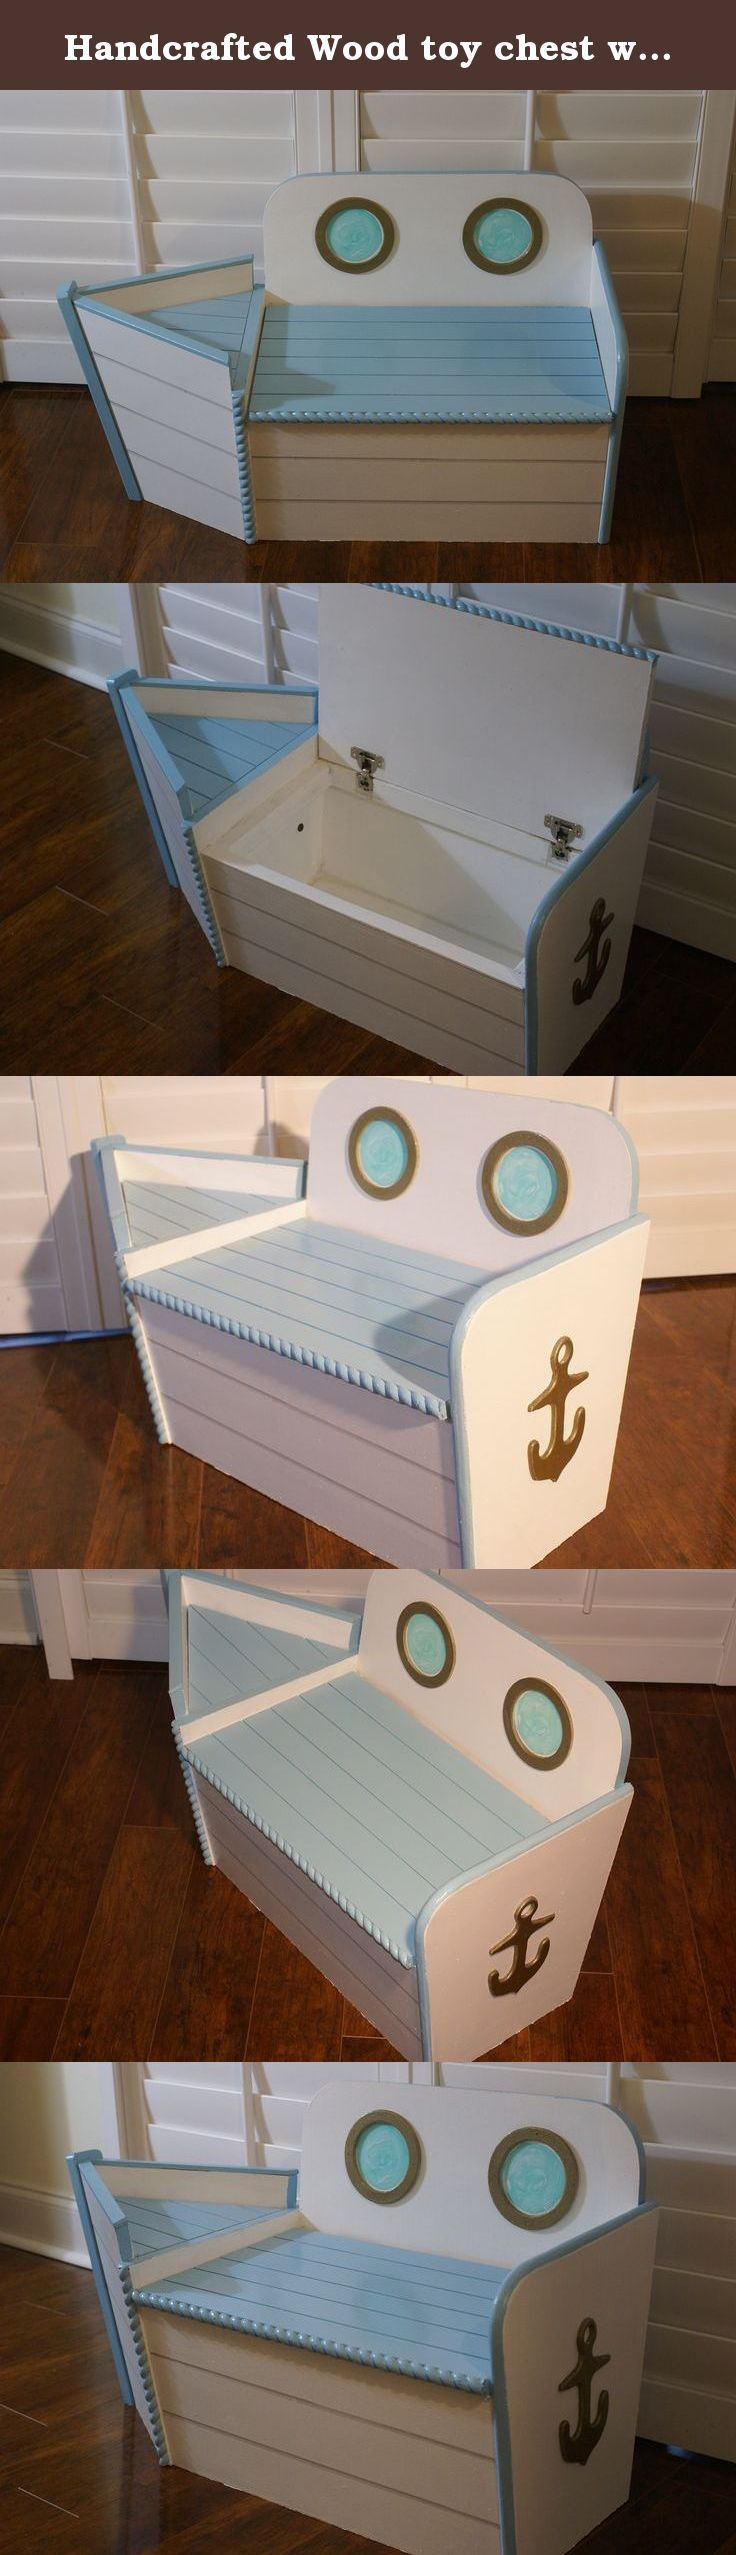 Wood Effect Kids Playroom Bedroom Storage Chest Trunk: 17 Best Ideas About Wooden Toy Boxes On Pinterest